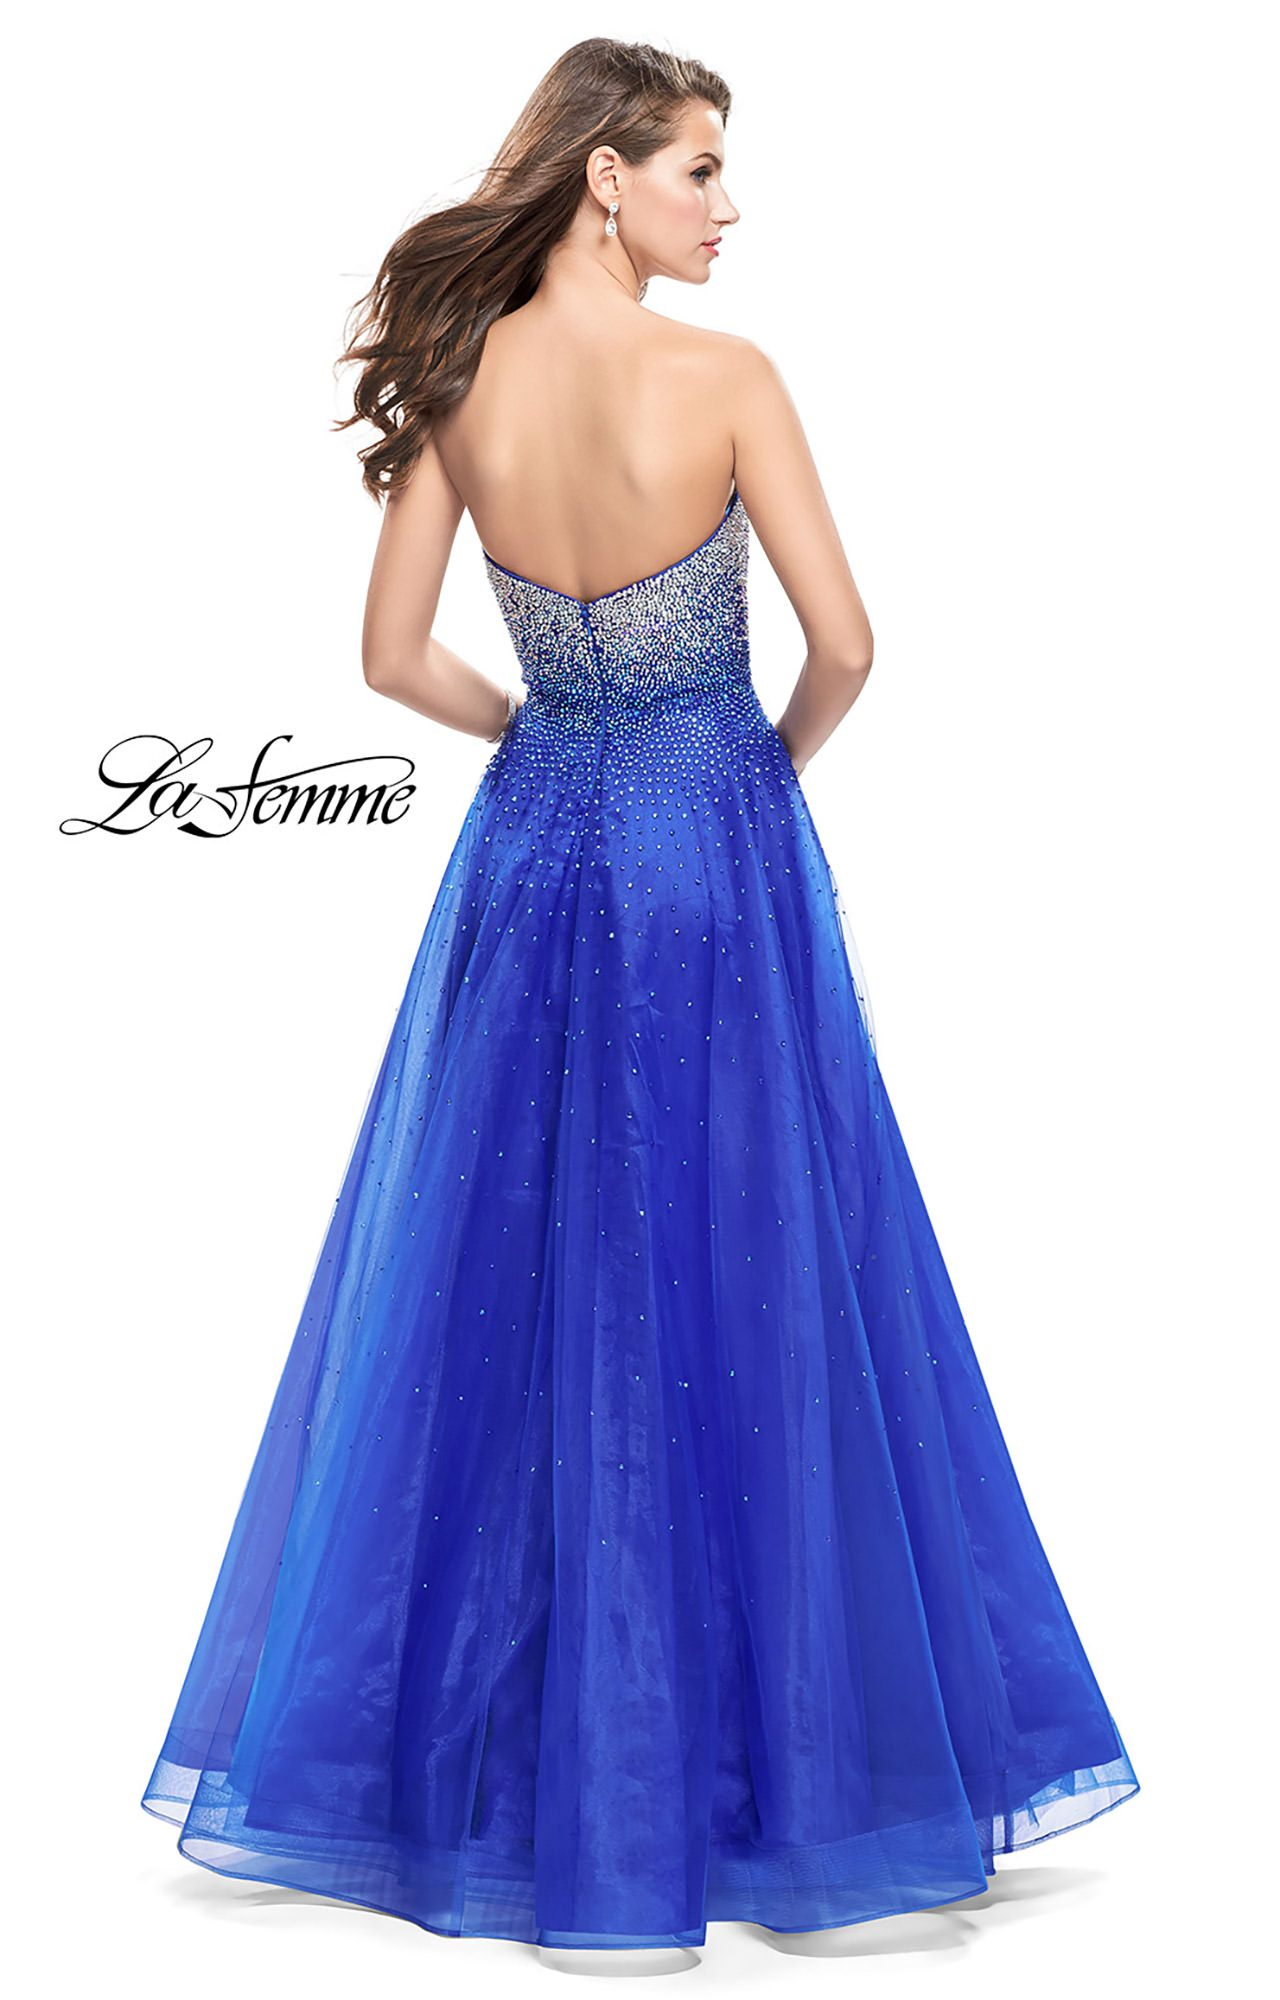 La Femme 26264 - Strapless Tulle Ball Gown Prom Dress